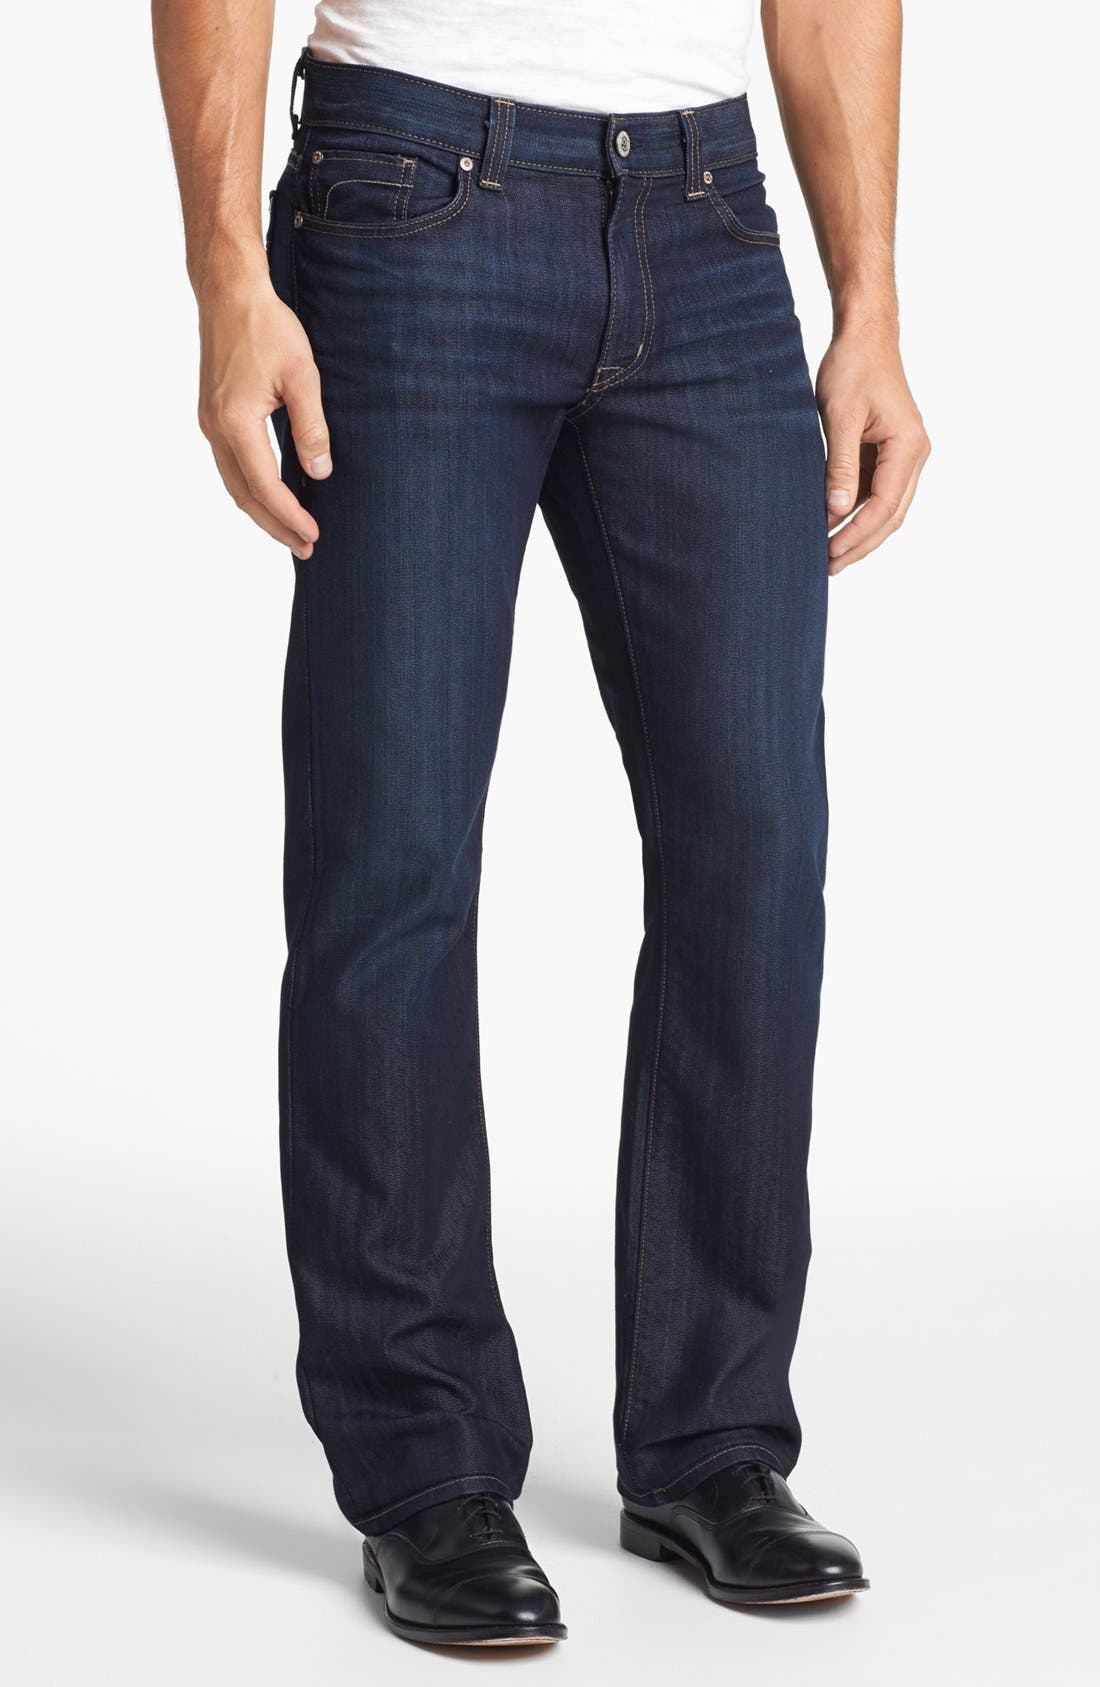 50-11 Relaxed Fit Jeans,                             Main thumbnail 1, color,                             Calvary